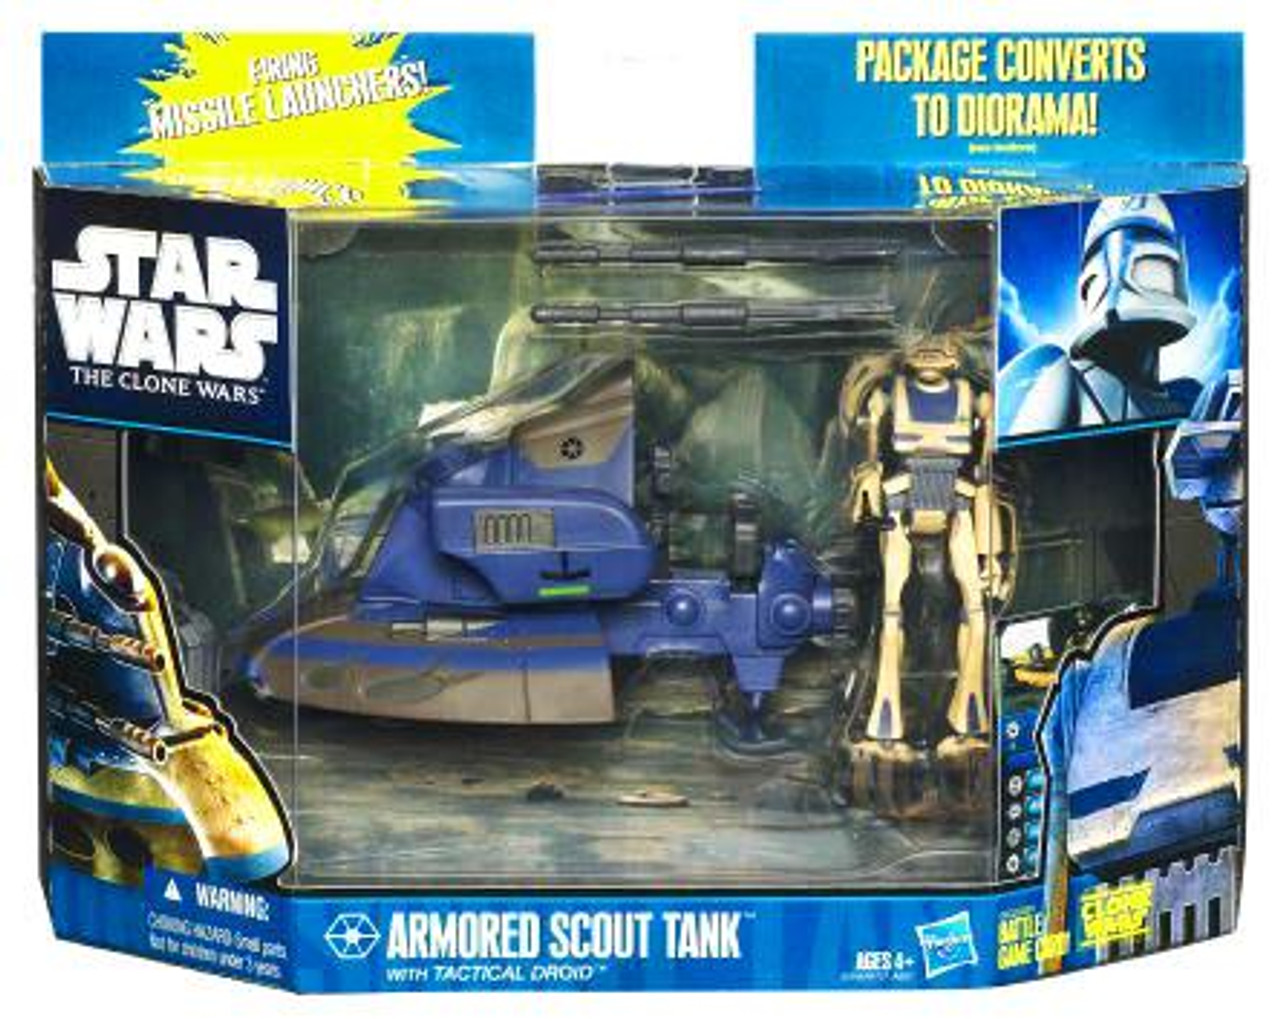 Star Wars The Clone Wars Vehicles & Action Figure Sets 2010 Armored Scout Tank with Tactical Droid Action Figure Set